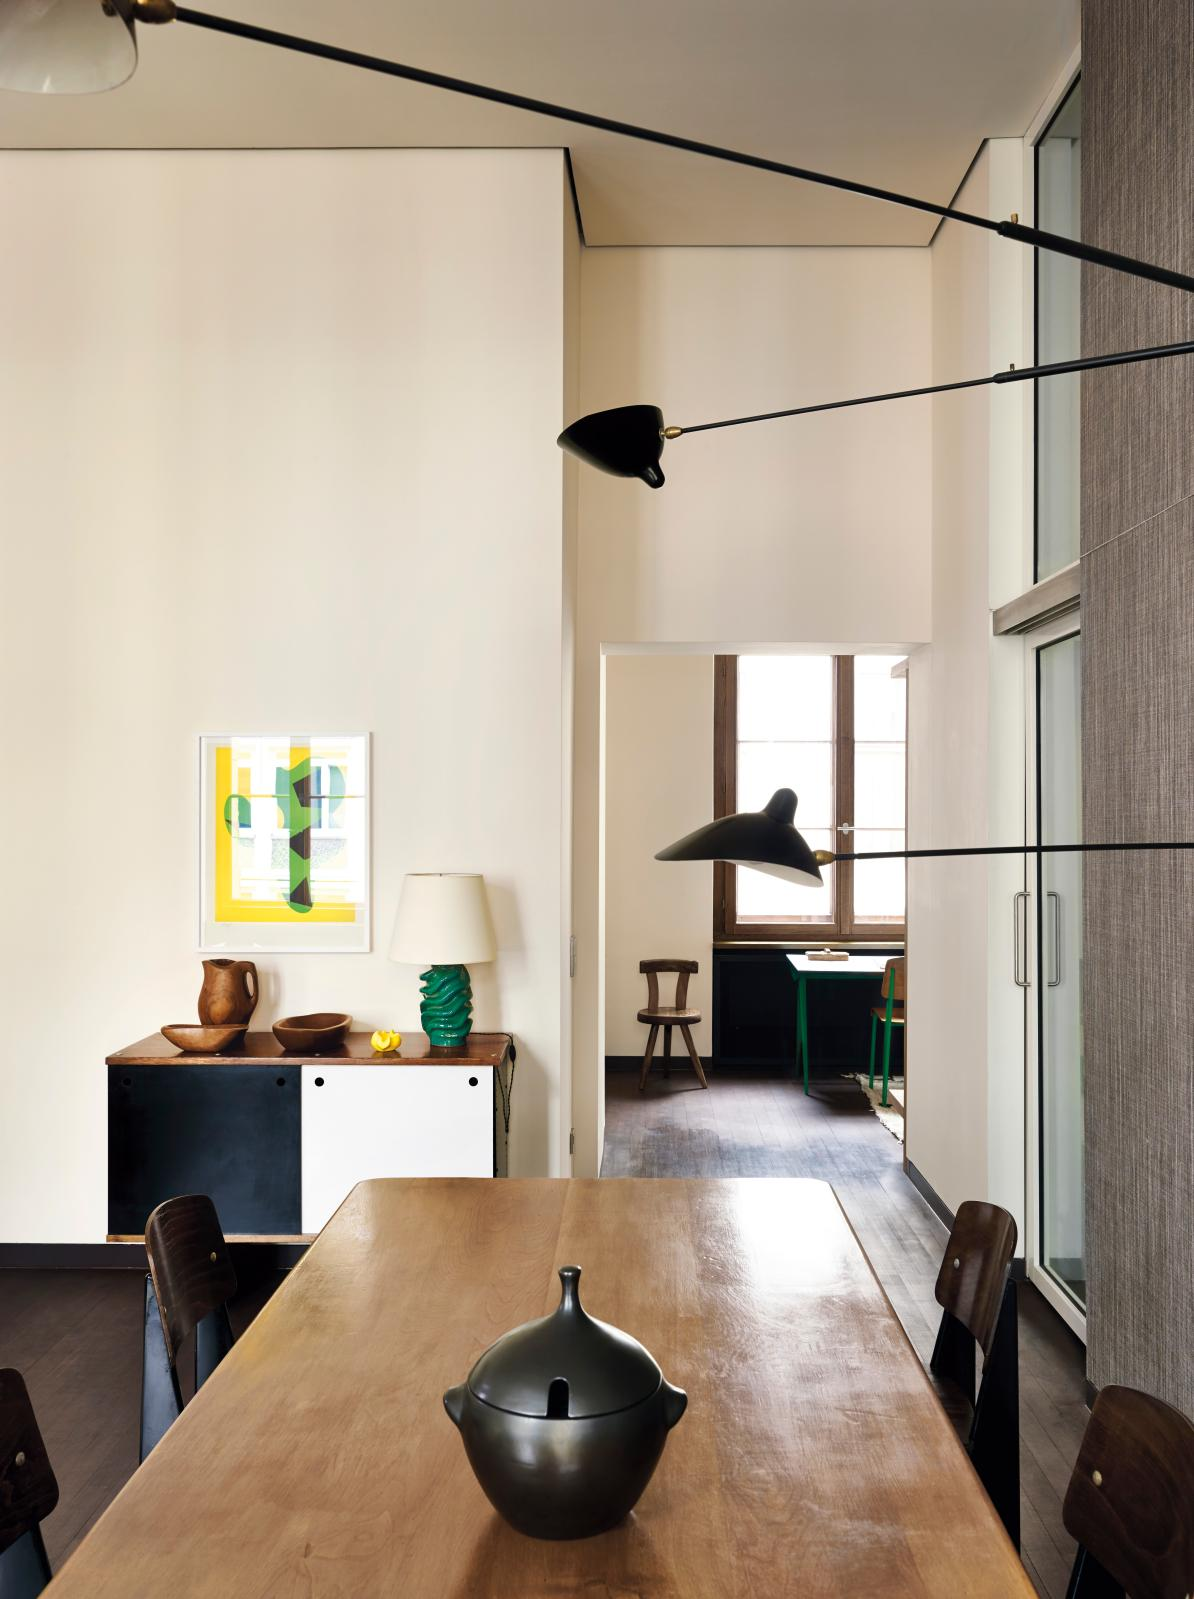 In Berlin, a table by Pierre Chapo, chairs by Jean Prouvé, sideboard by Charlotte Perriand, ceramics by Georges Jouve, wood sculpture by Alexandre Nol